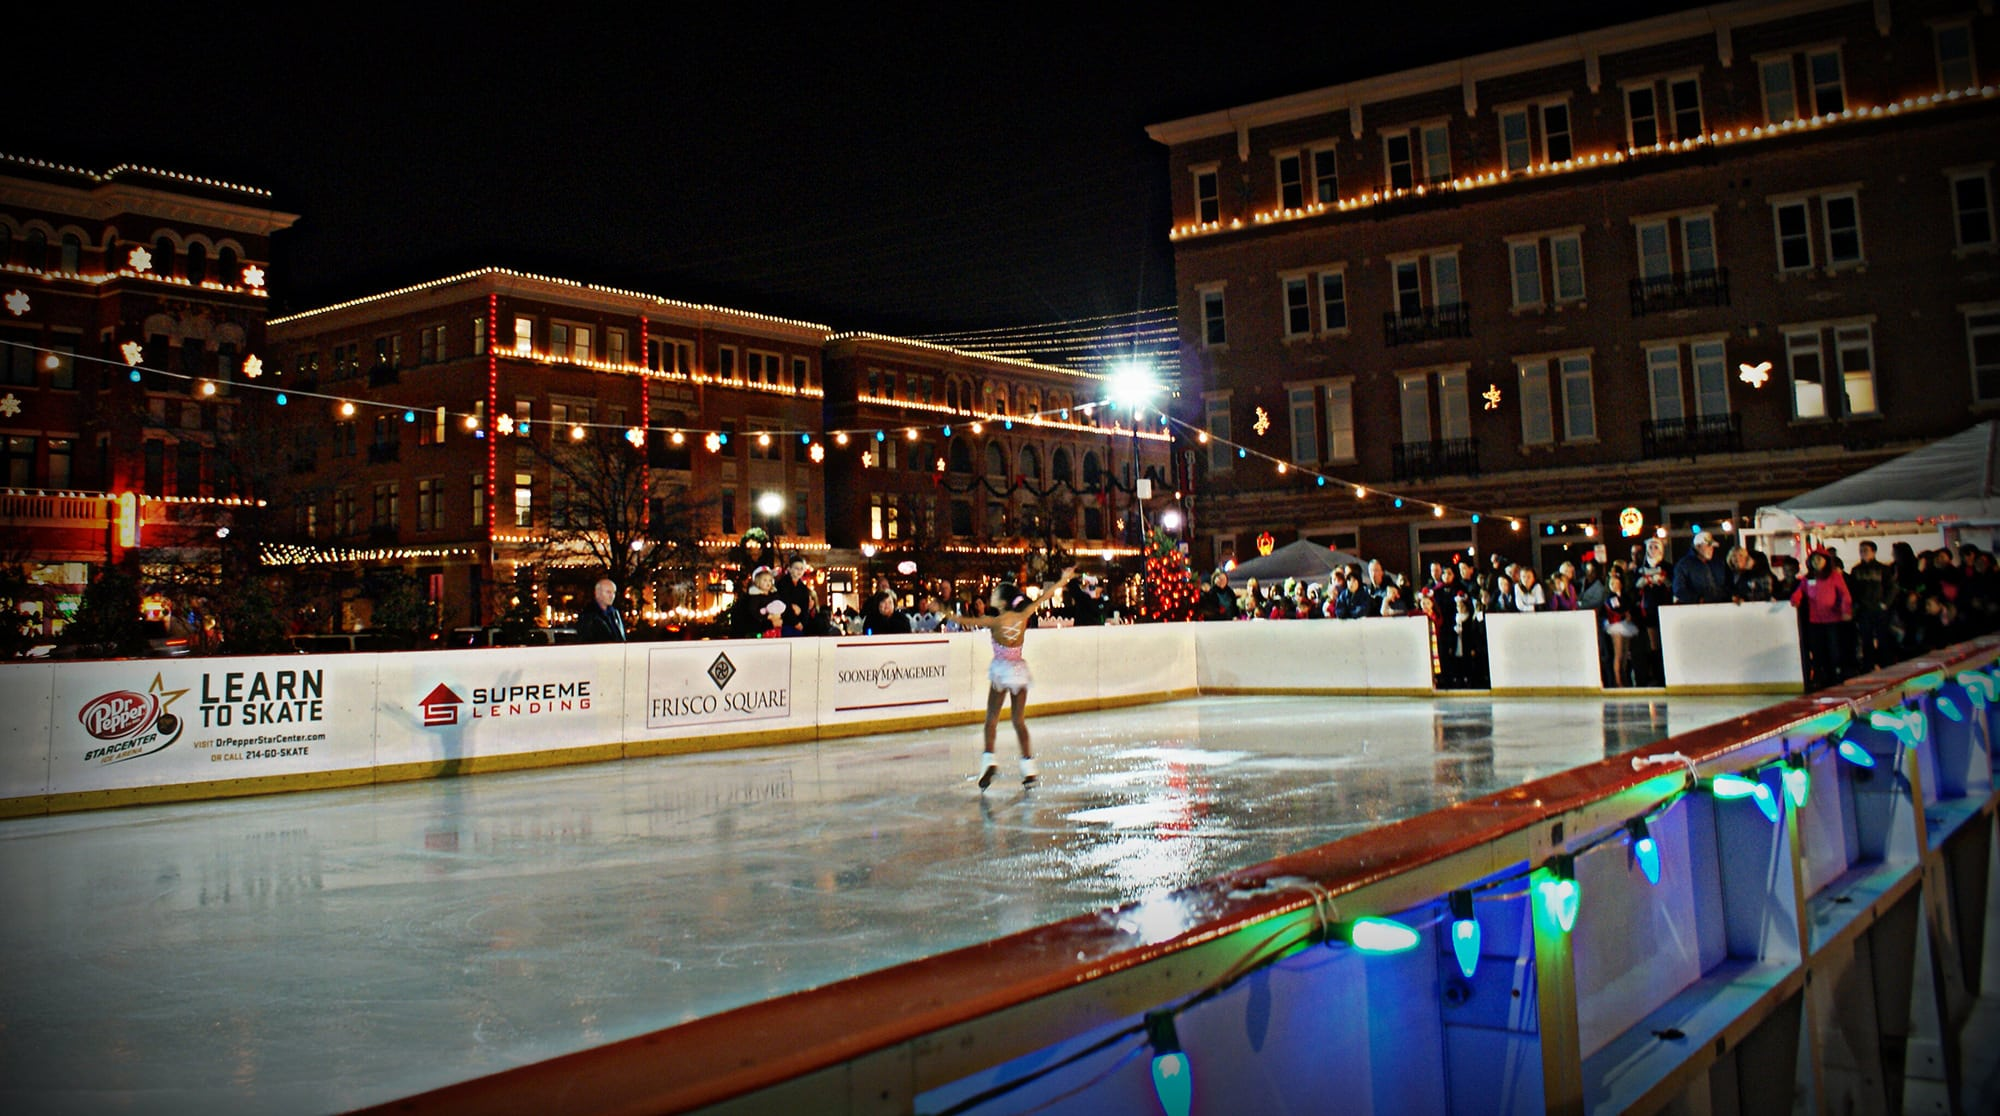 Skate The Square A Real Outdoor Ice Rink In Frisco Square